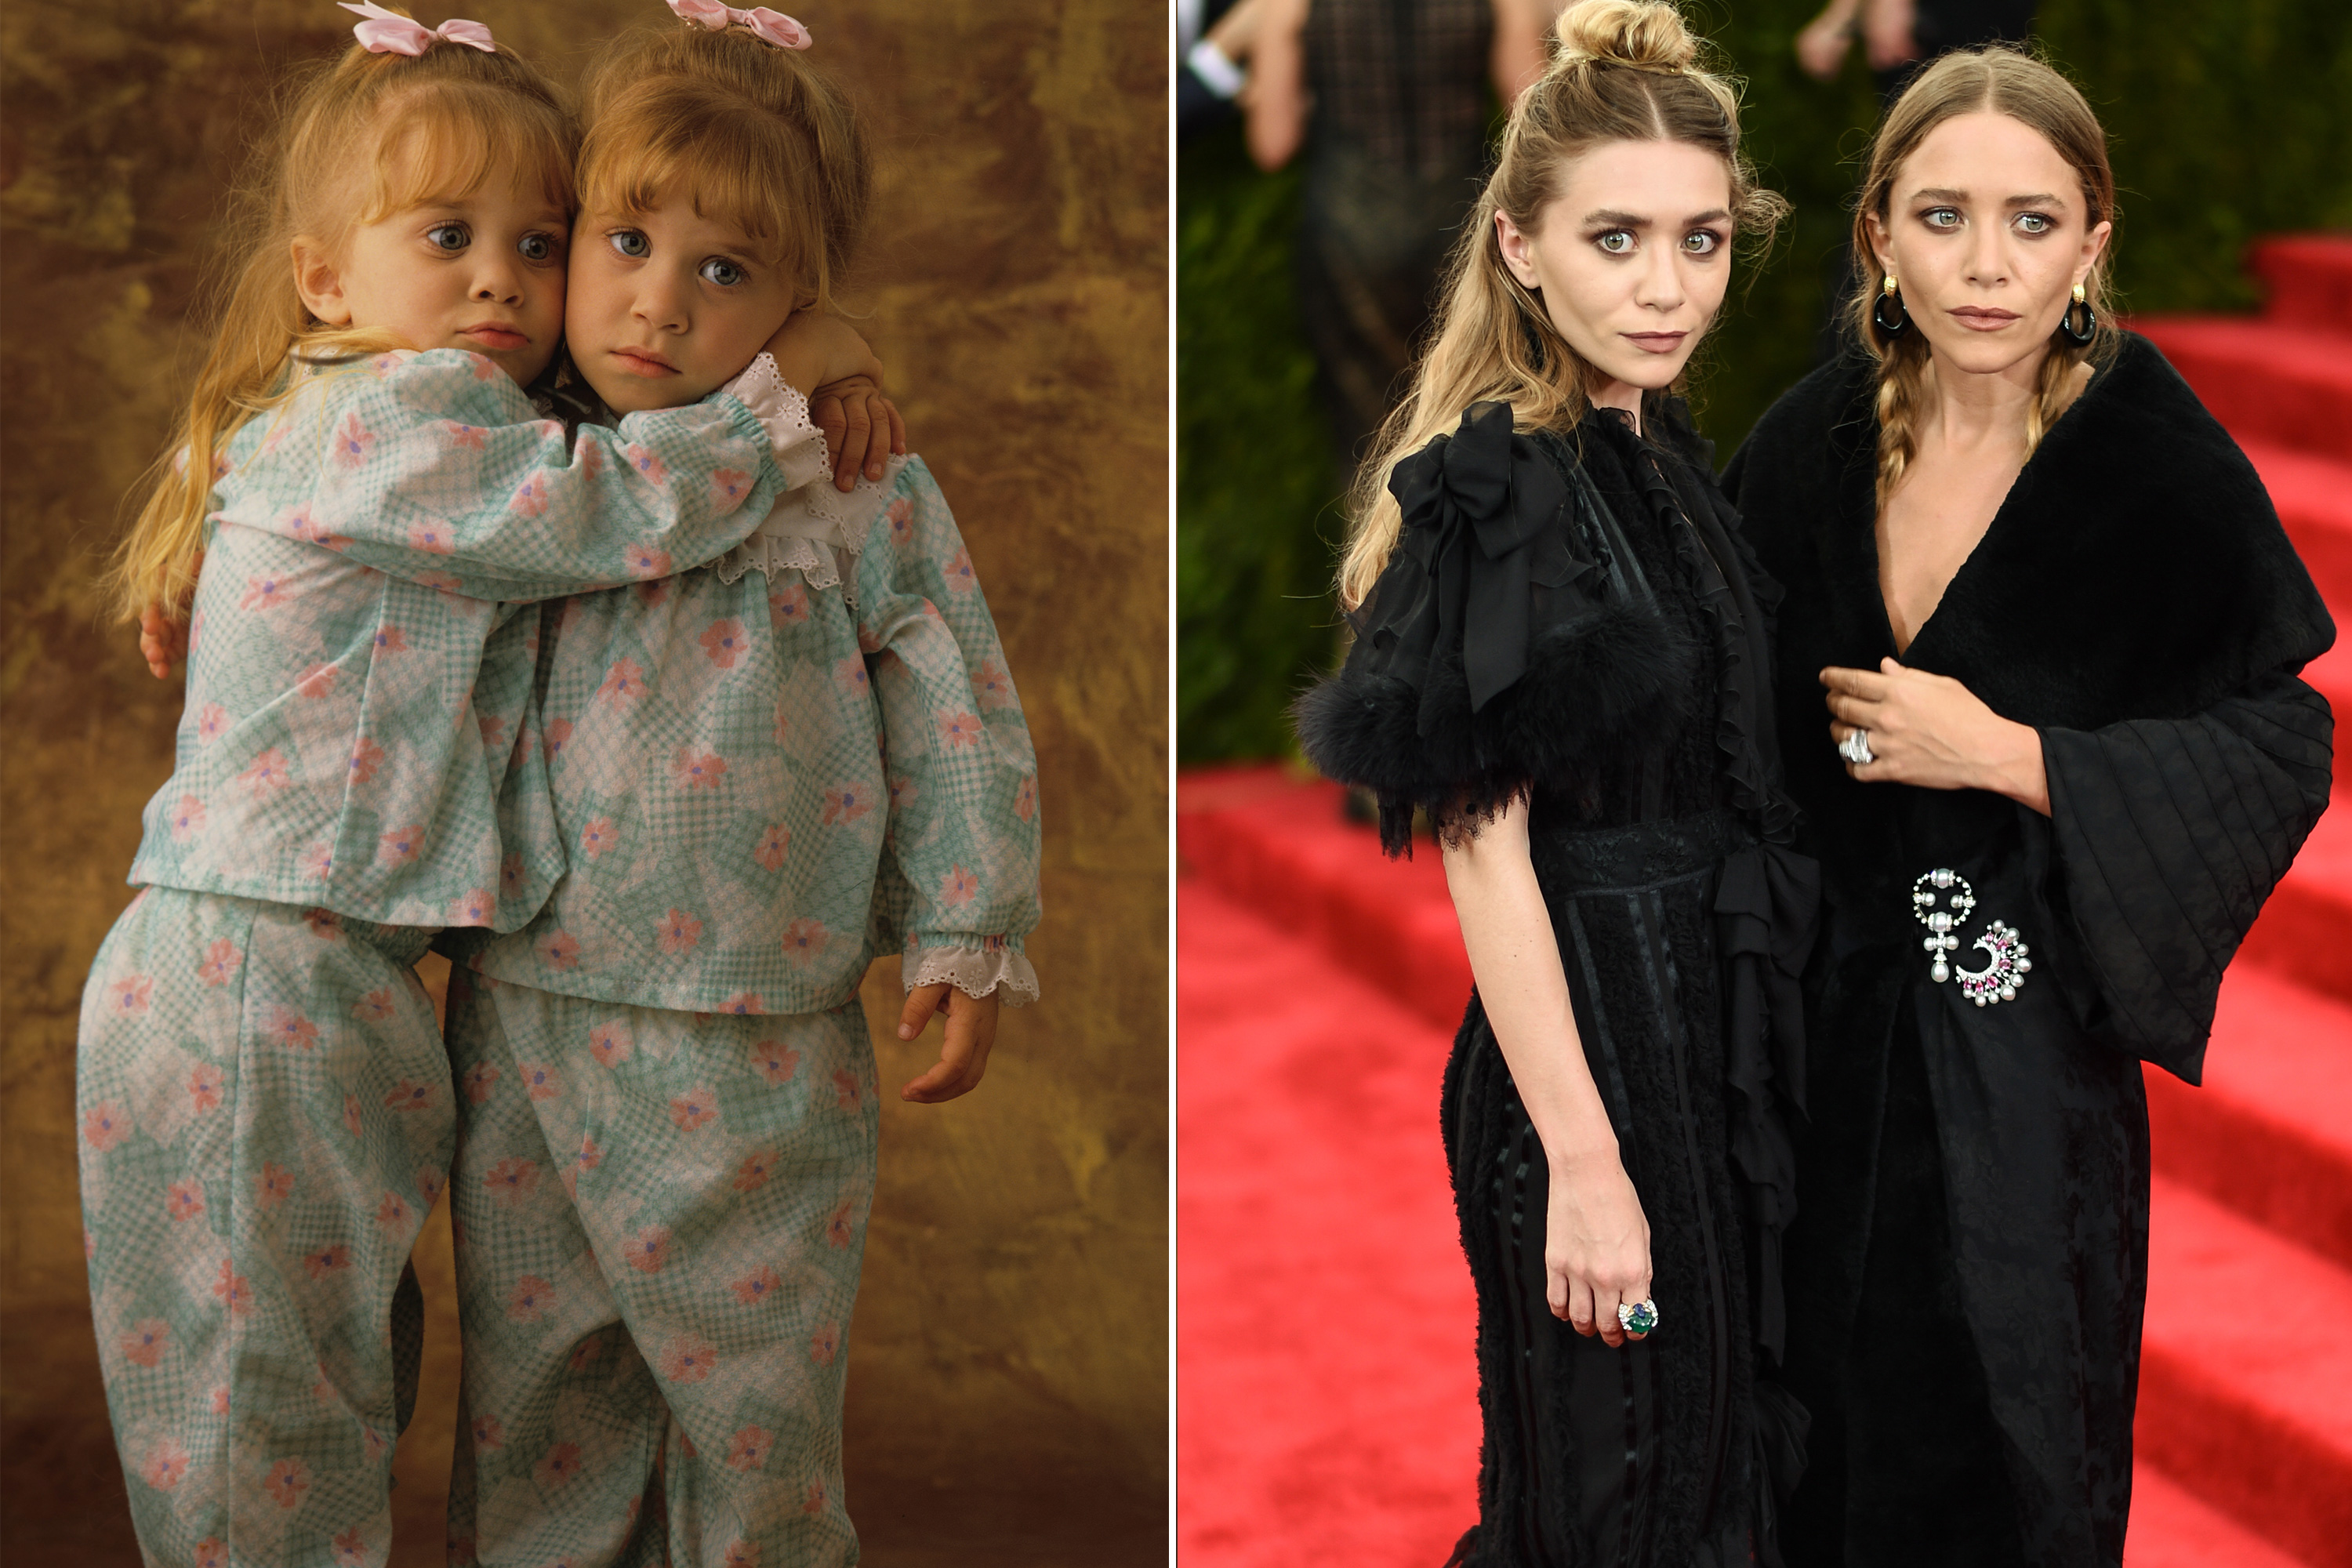 Mary-Kate and Ashley Olsen as Michelle Tanner